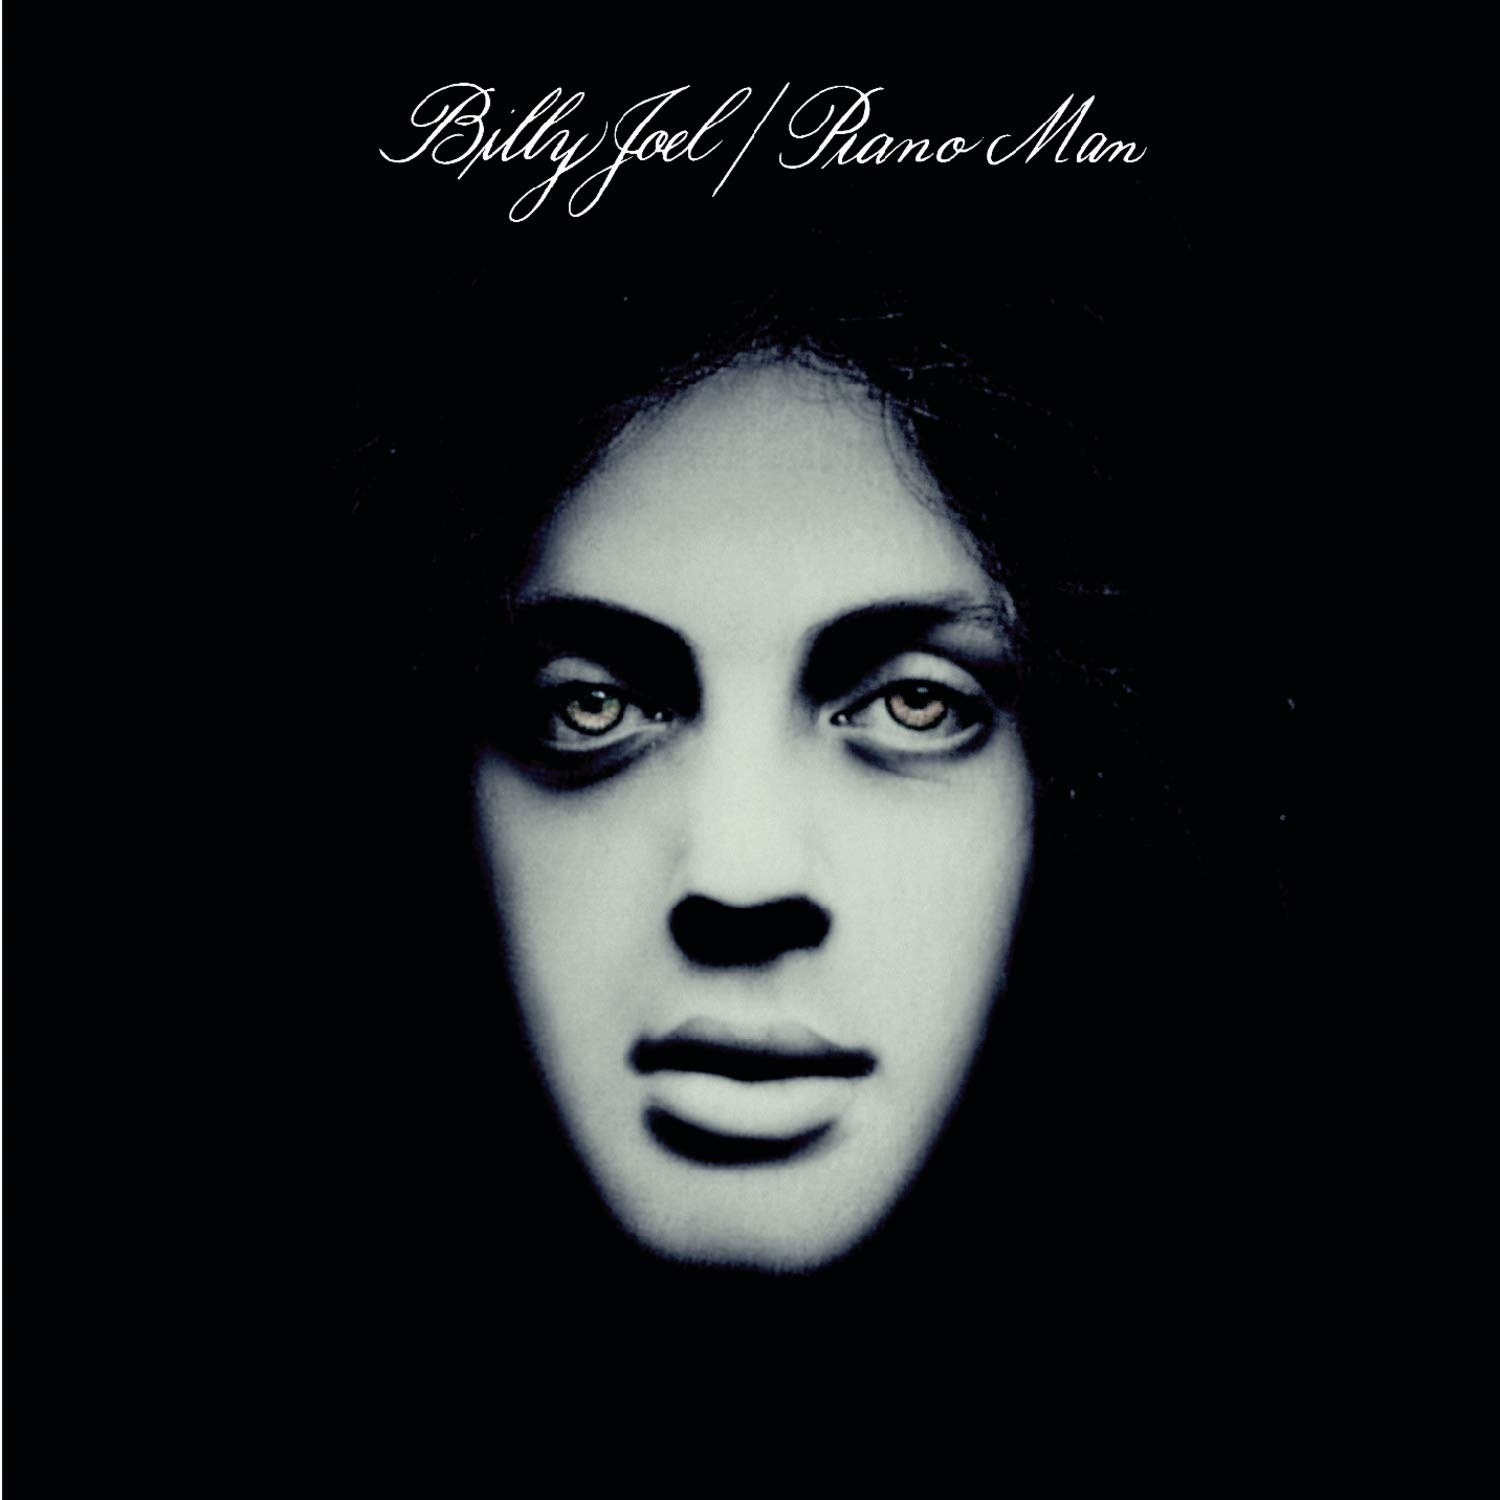 album cover of Piano Man showing Billy Joel's face coming out of darkness